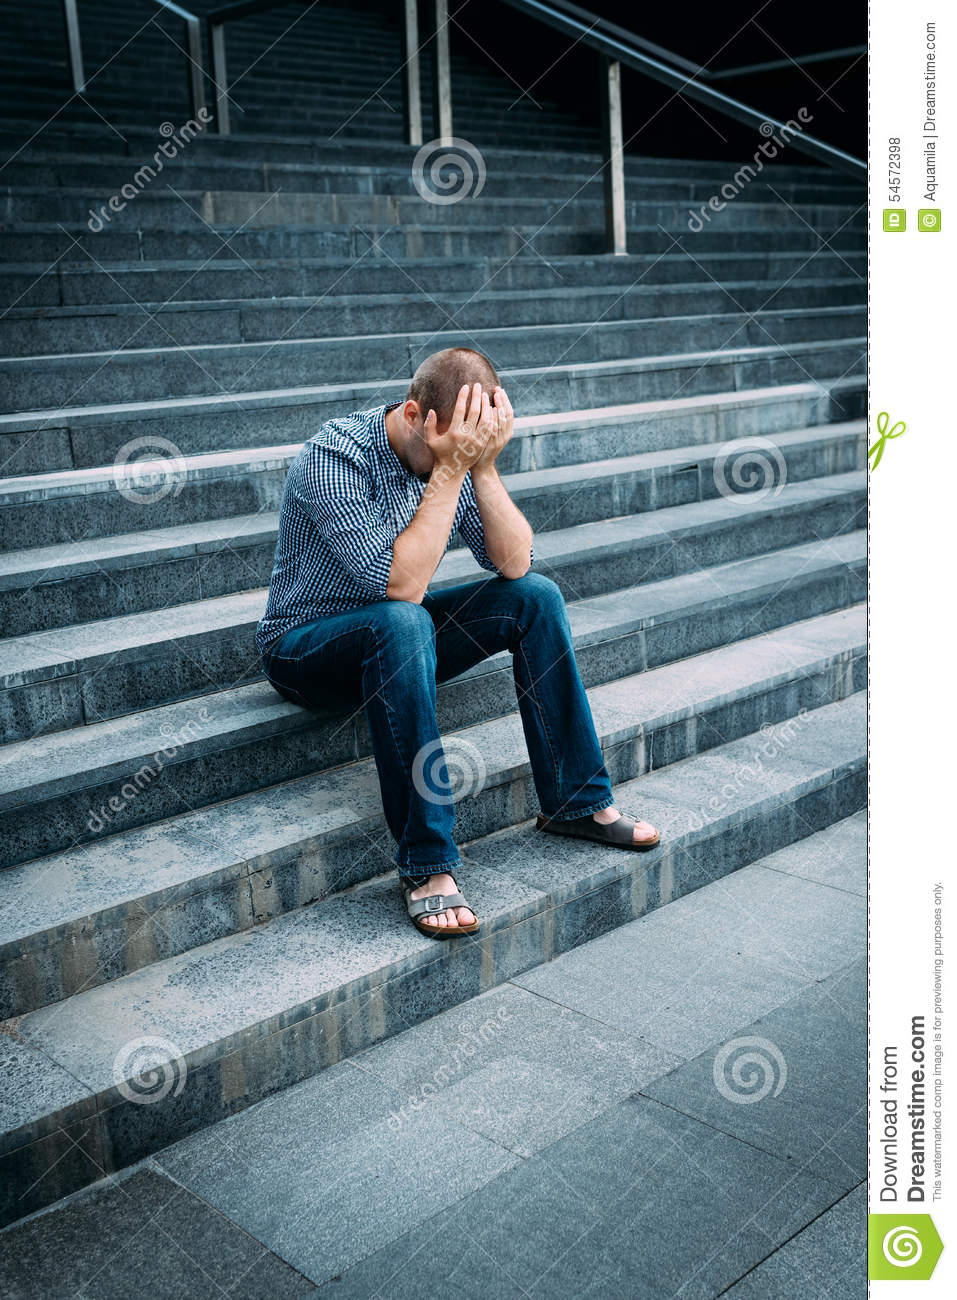 Despaired young man covering his face with hands sitting on stairs